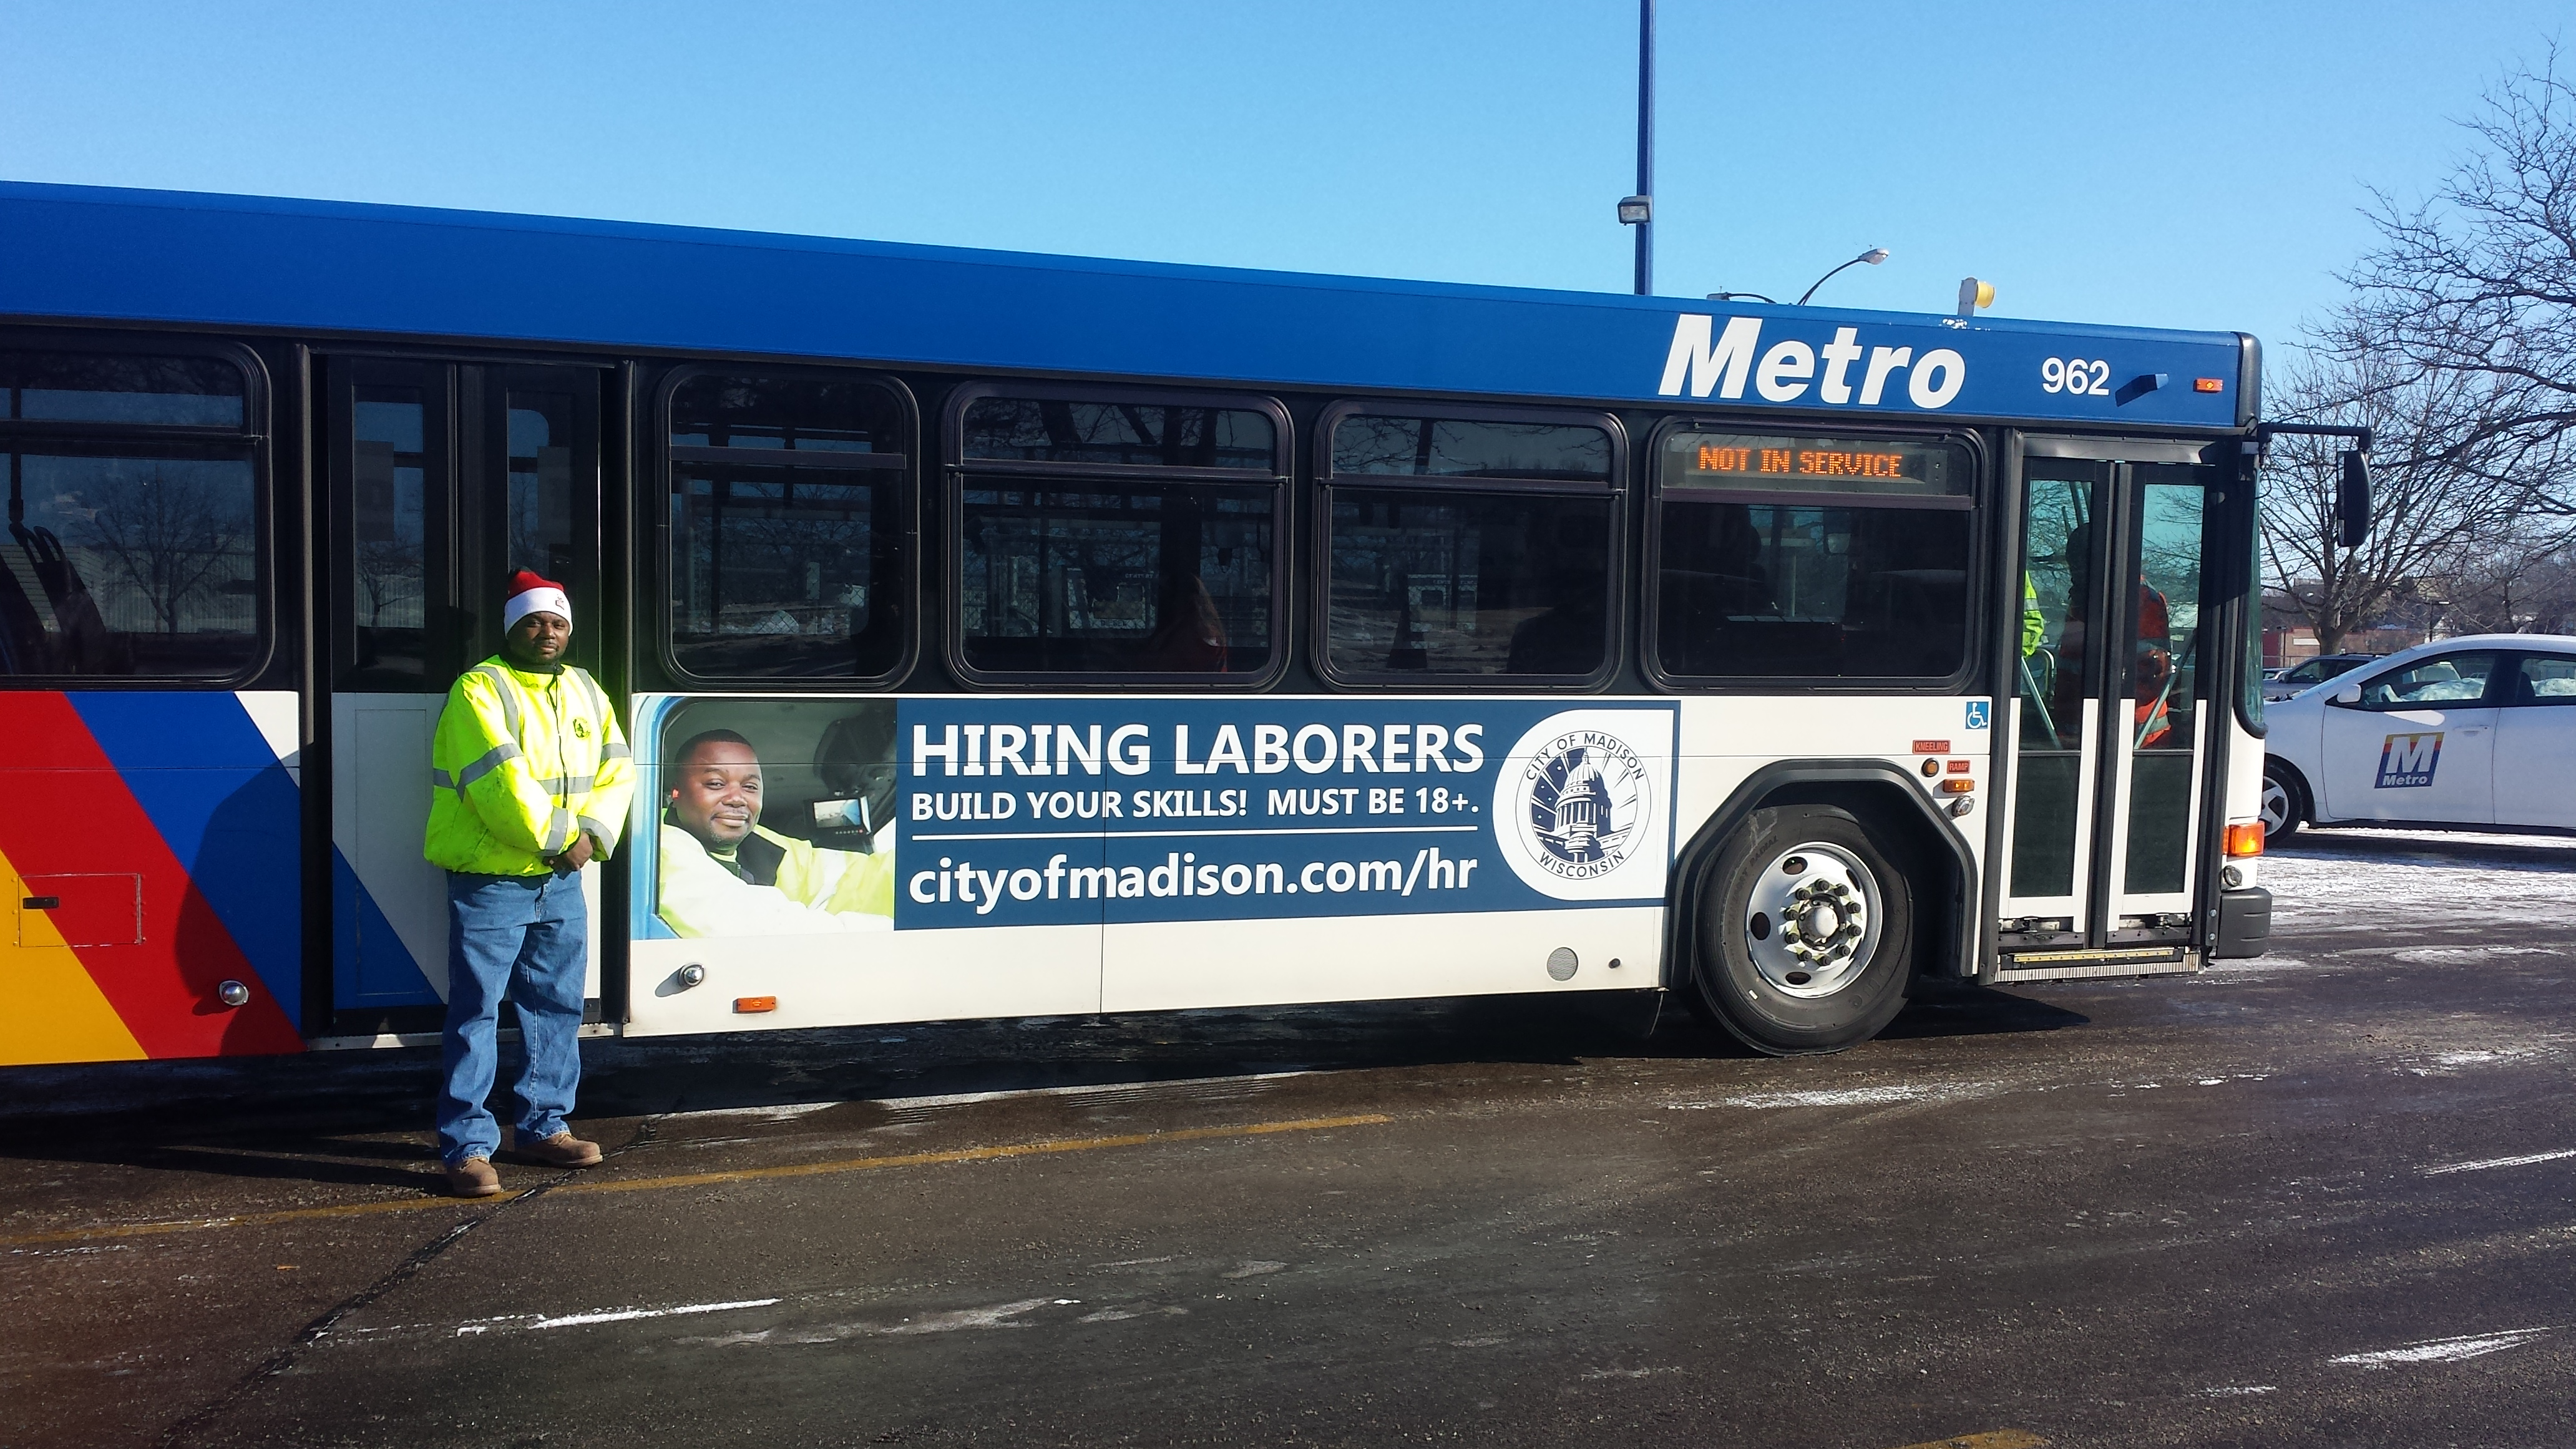 Paul soglin waxing america city of madison recruitment ads staff took it a step further including two parks employees charles and juan in the metro ride guide advertising seasonal laborer opportunities sciox Gallery